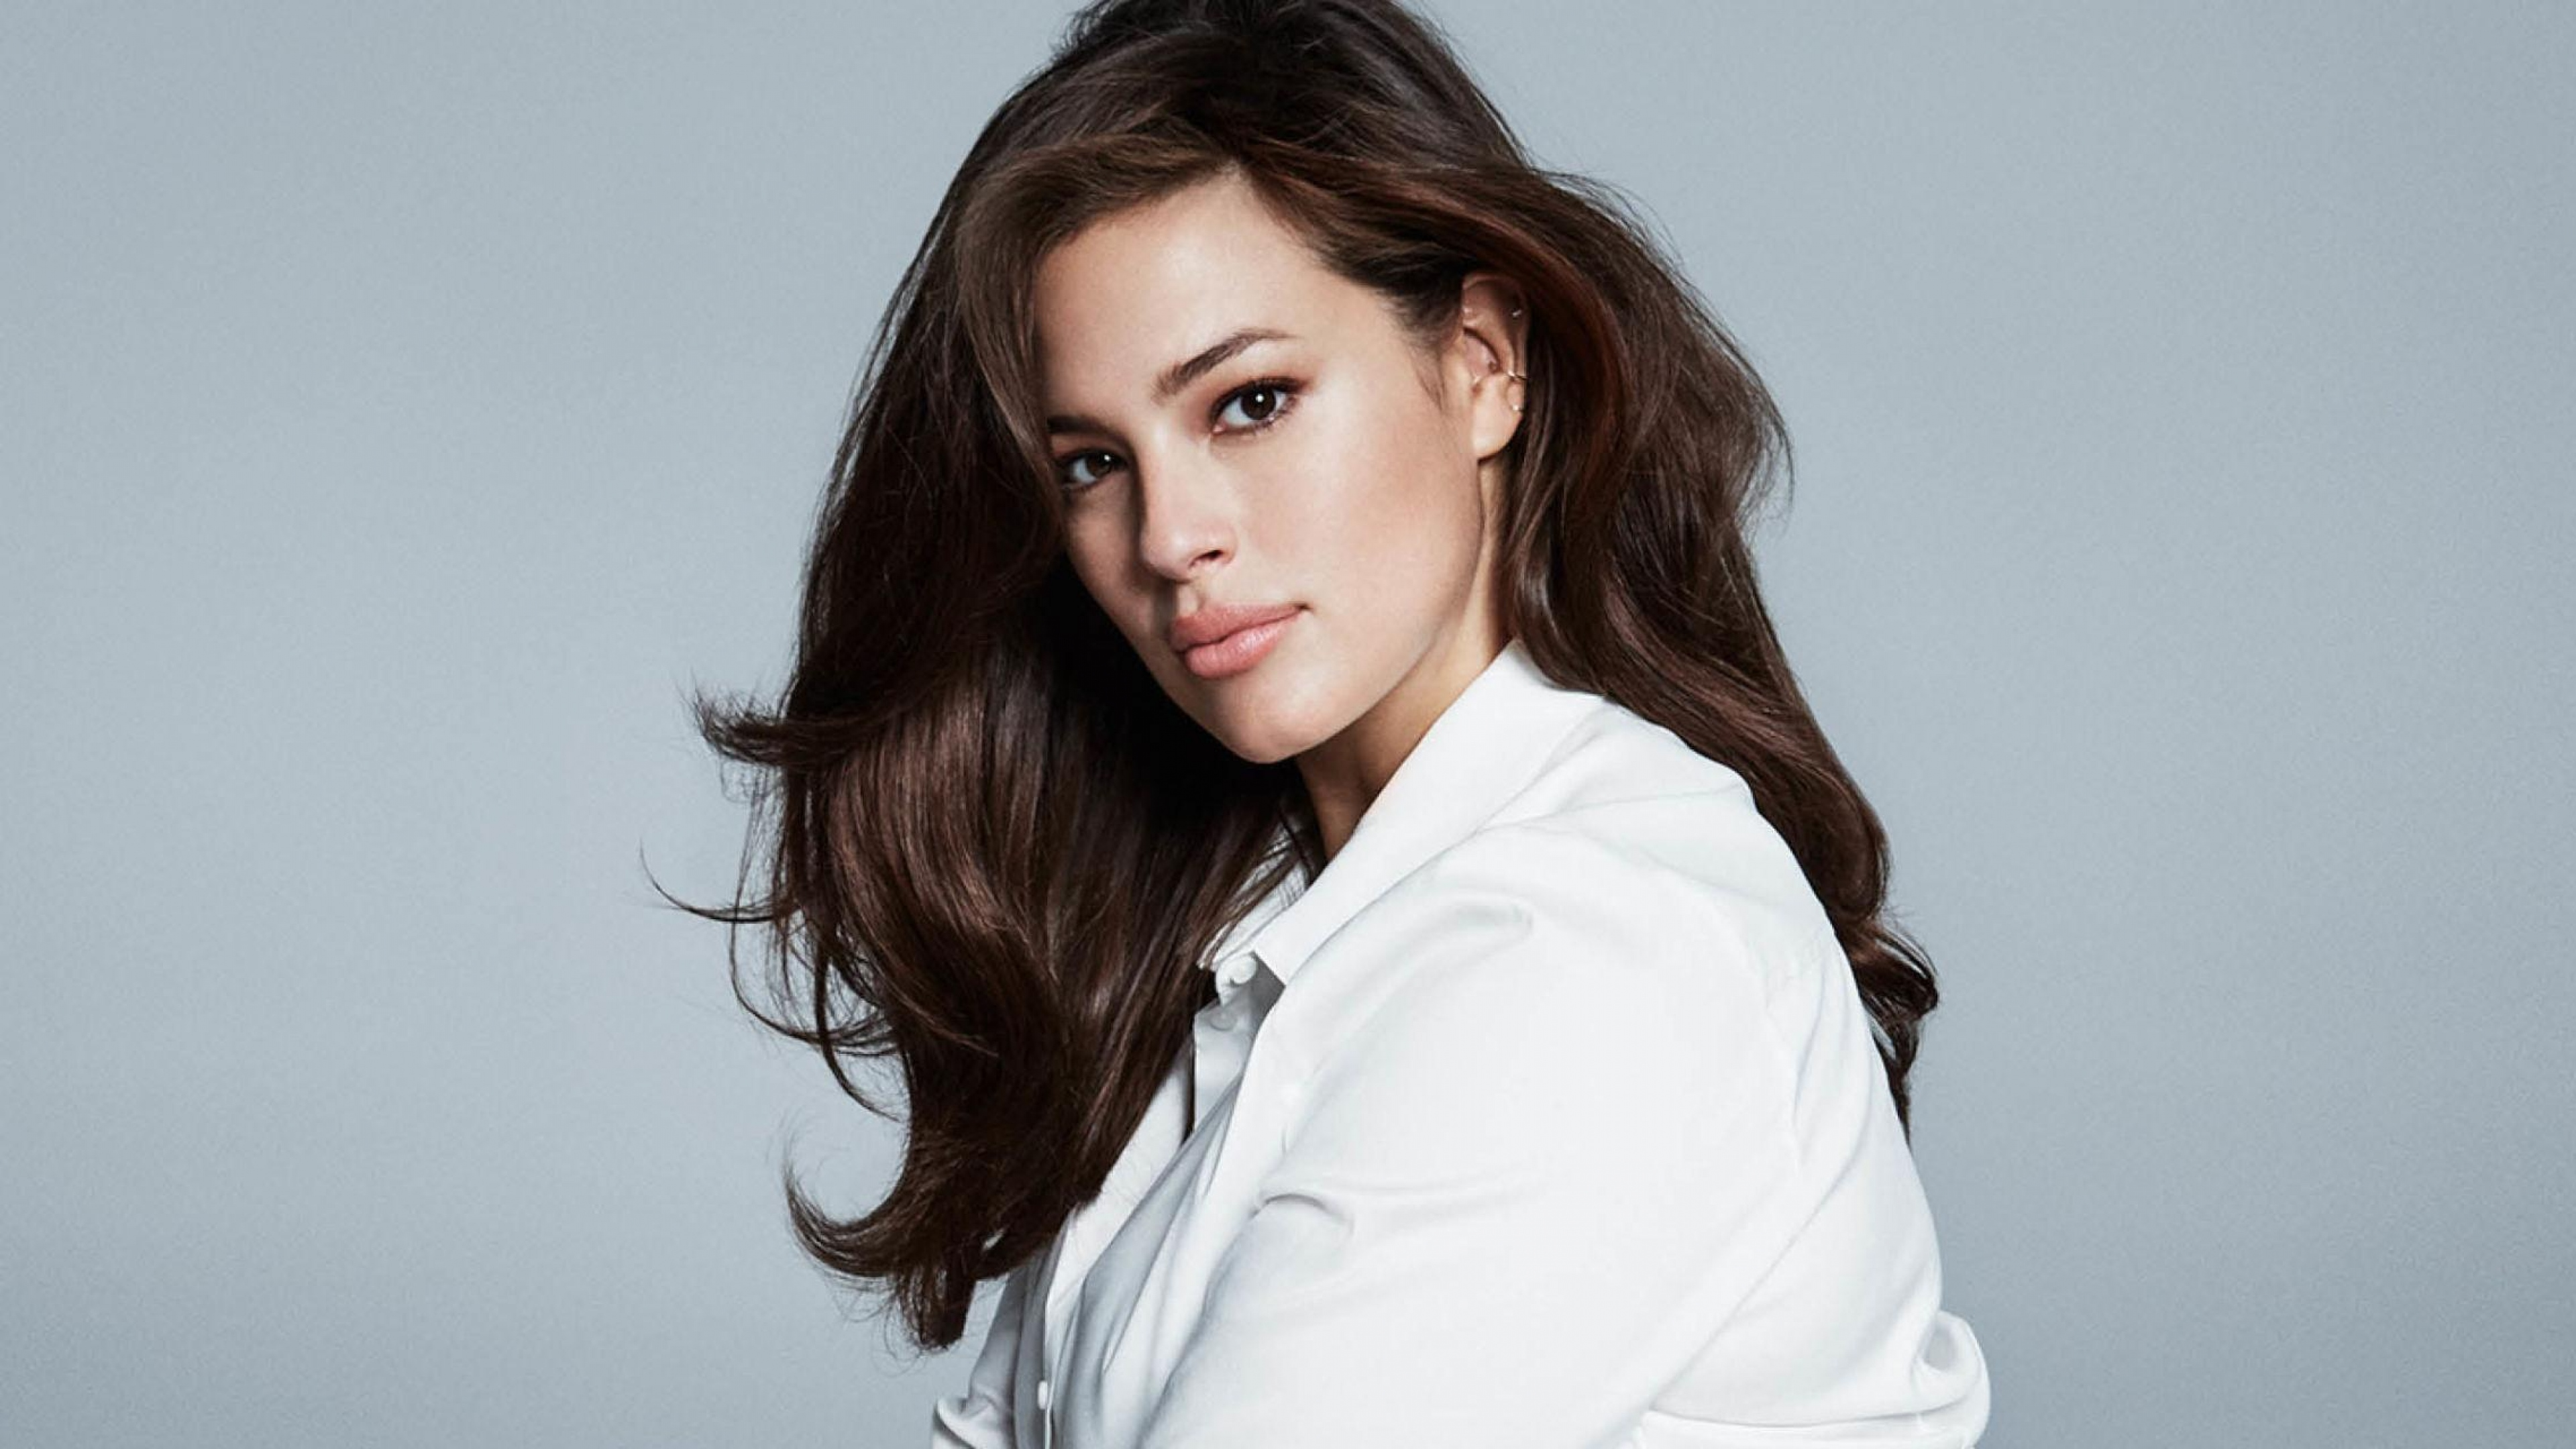 ashley graham model widescreen wallpaper 63397